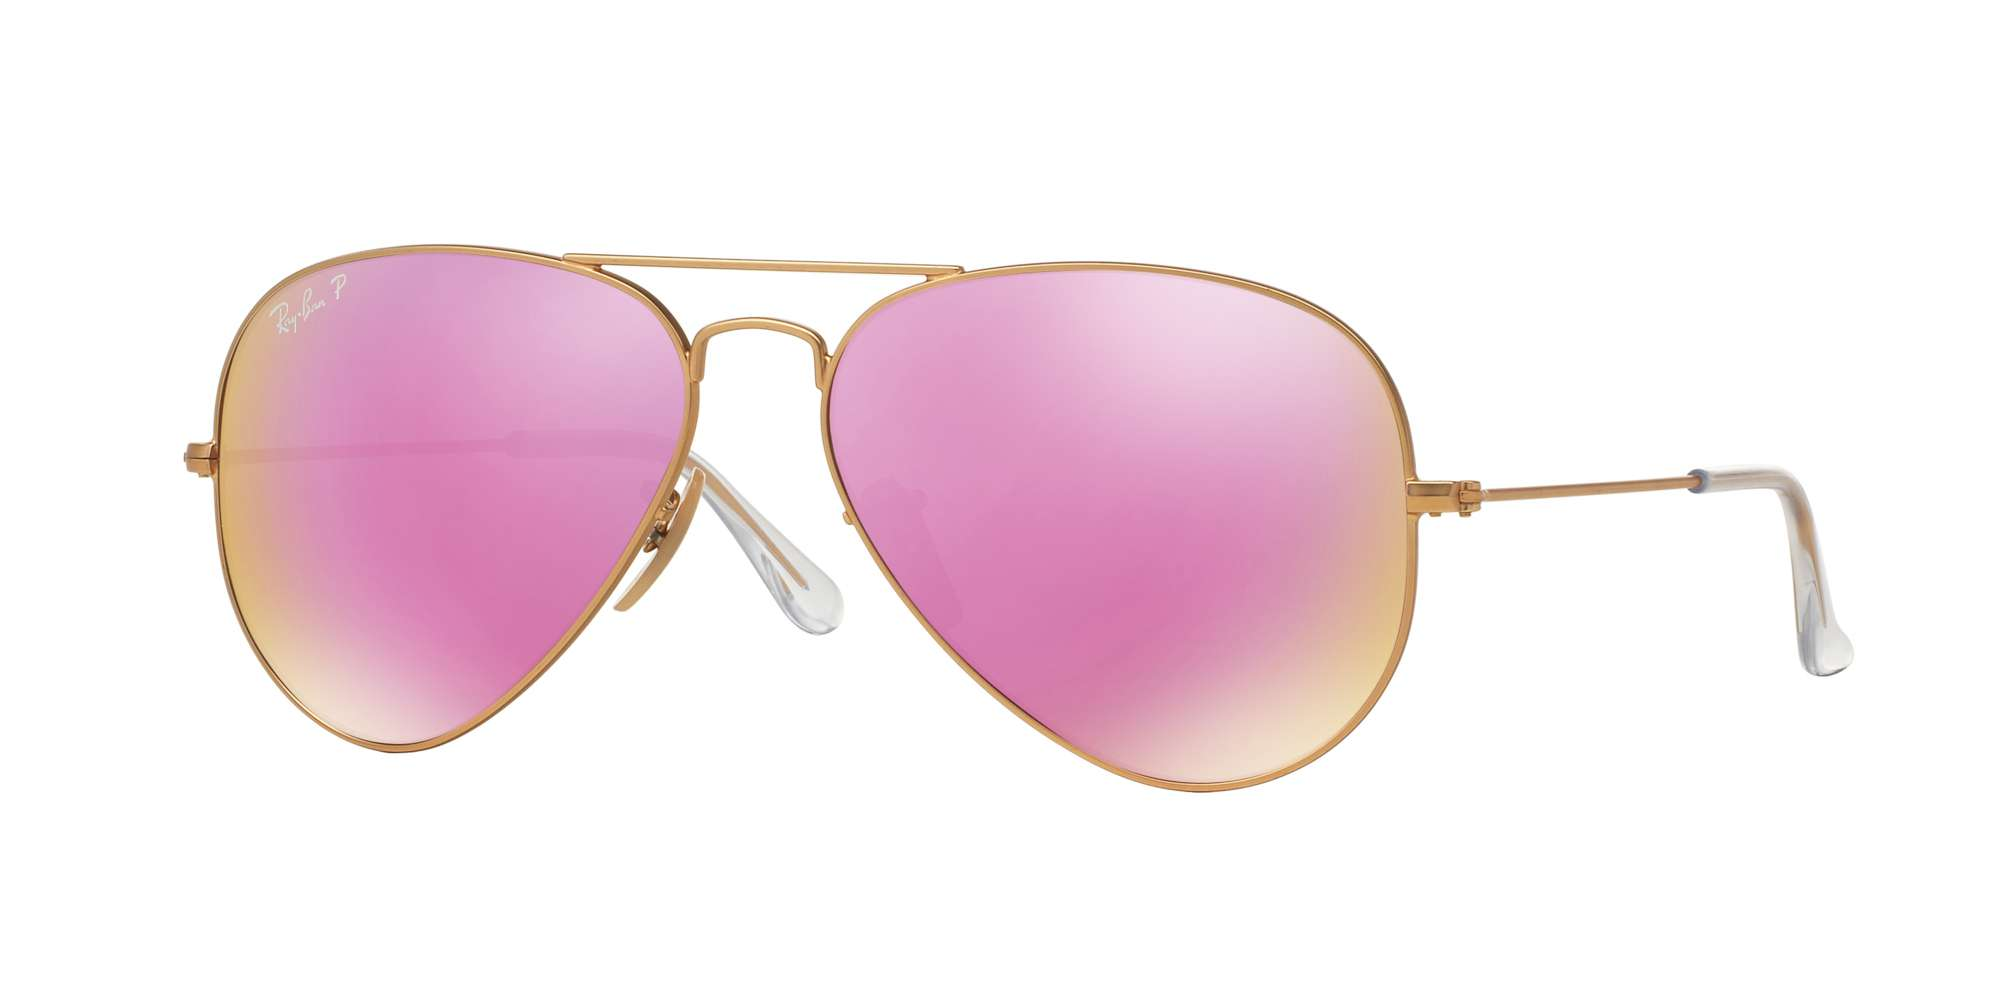 MATTE GOLD / BROWN MIRROR FUCSIA POLAR lenses